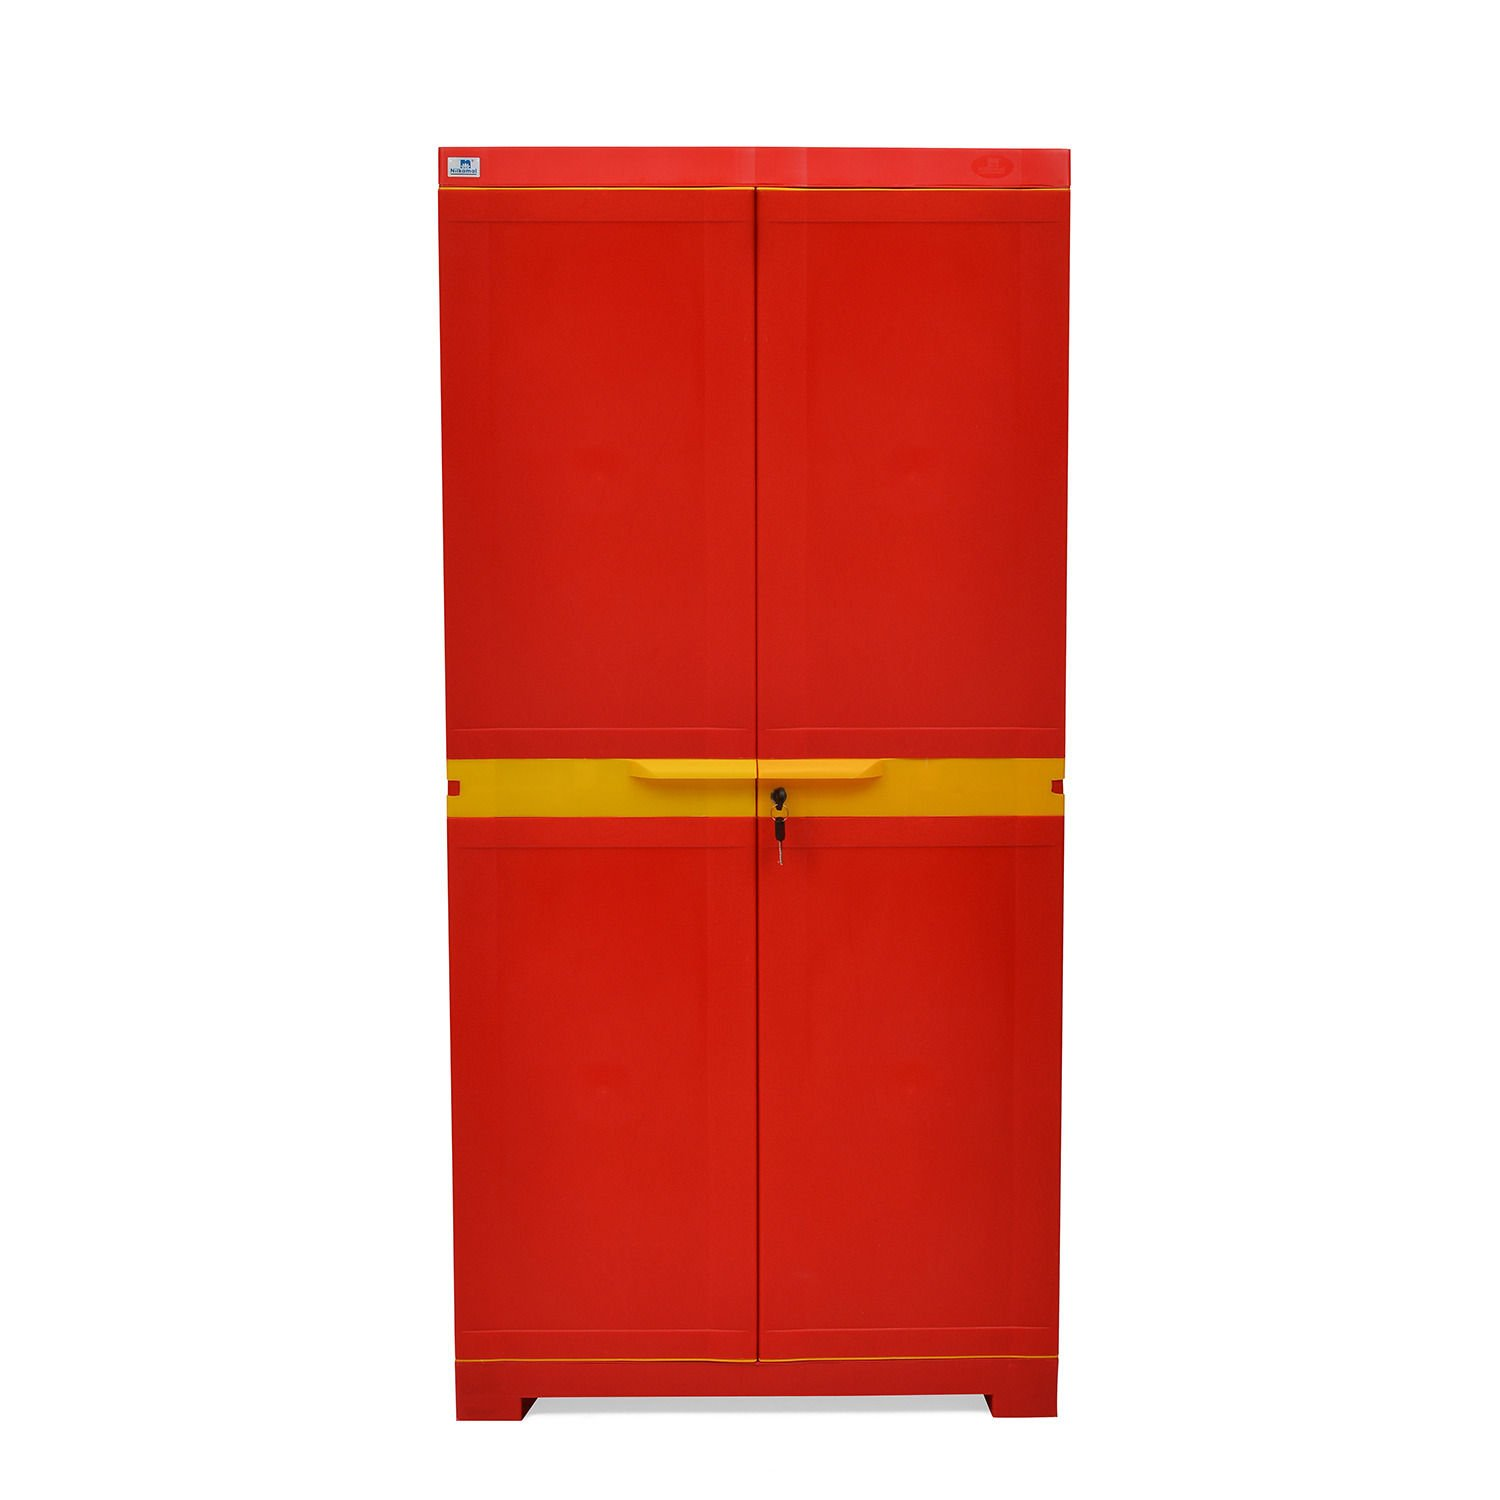 Nilkamal Freedom FMM Mini Medium Storage Cabinet (Red and Yellow) By Amazon @ Rs.3,199